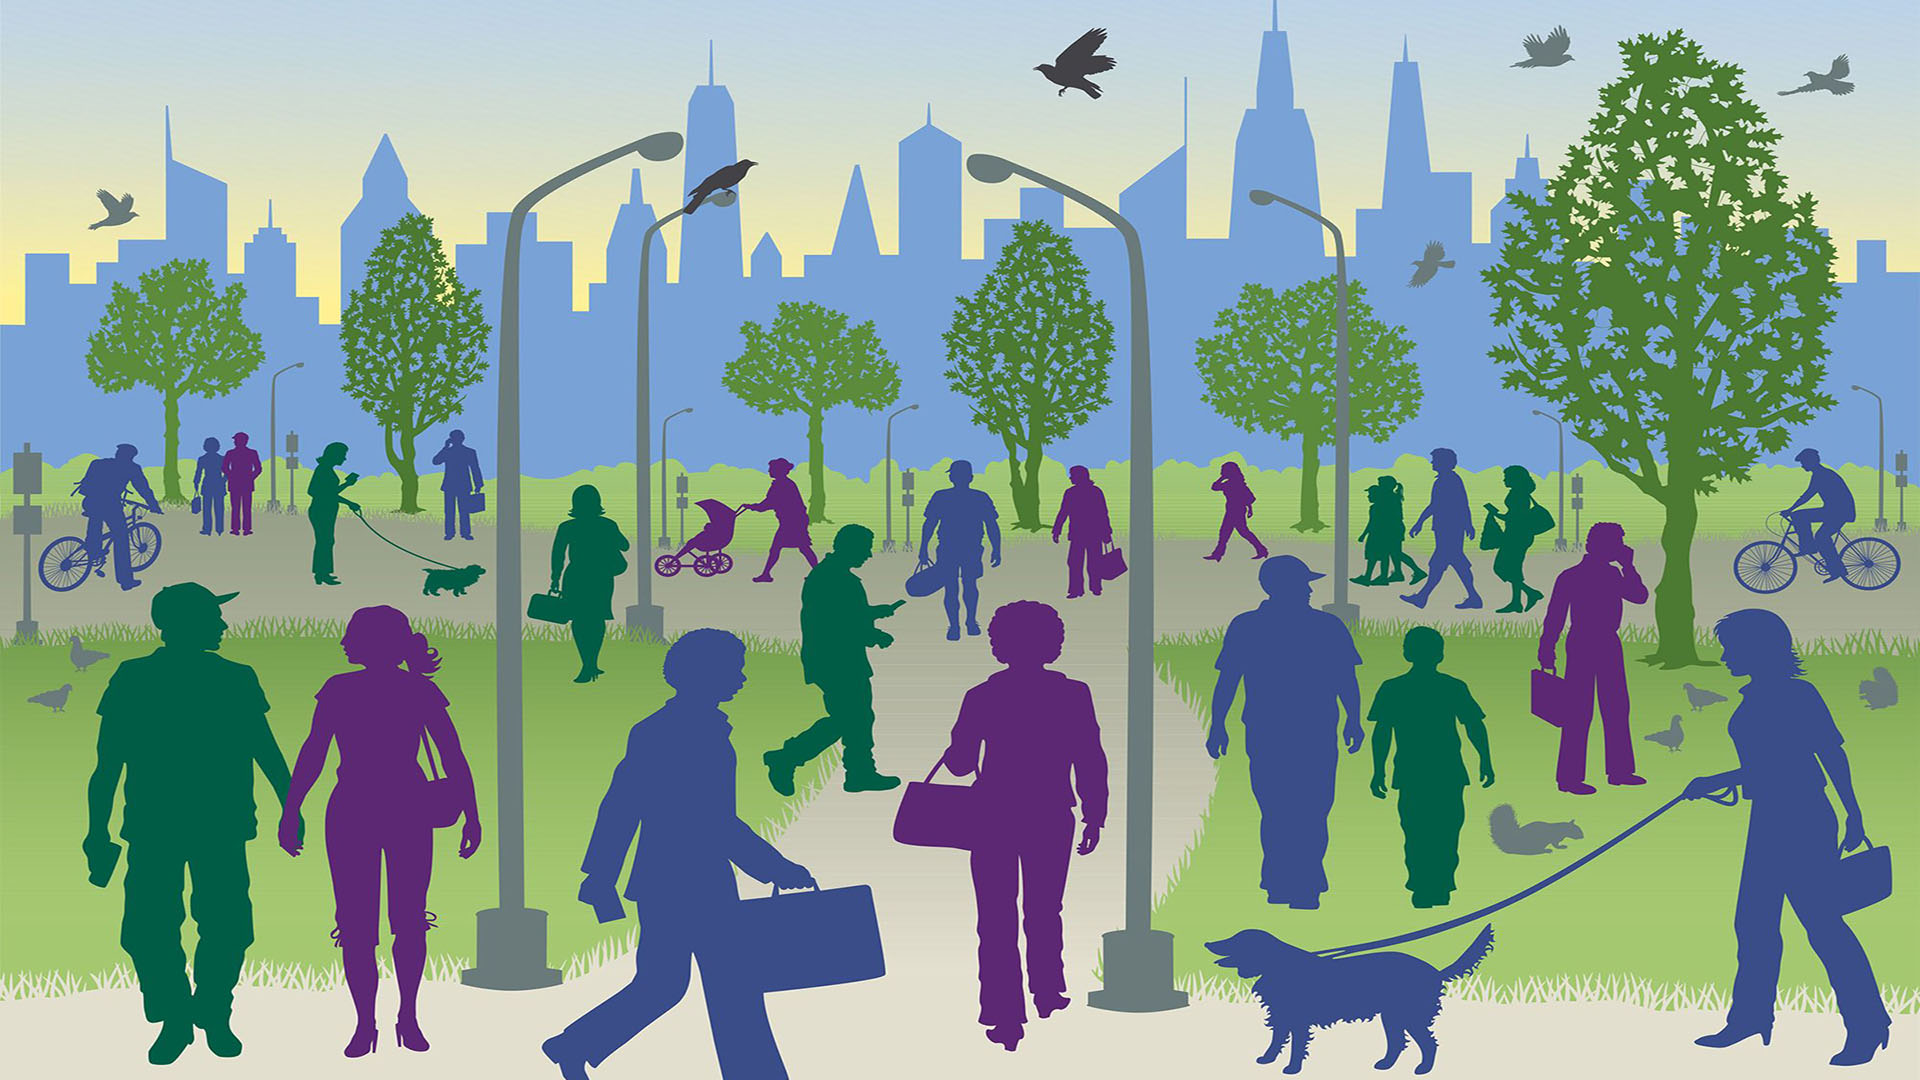 A graphic of people walking through a public park in a city